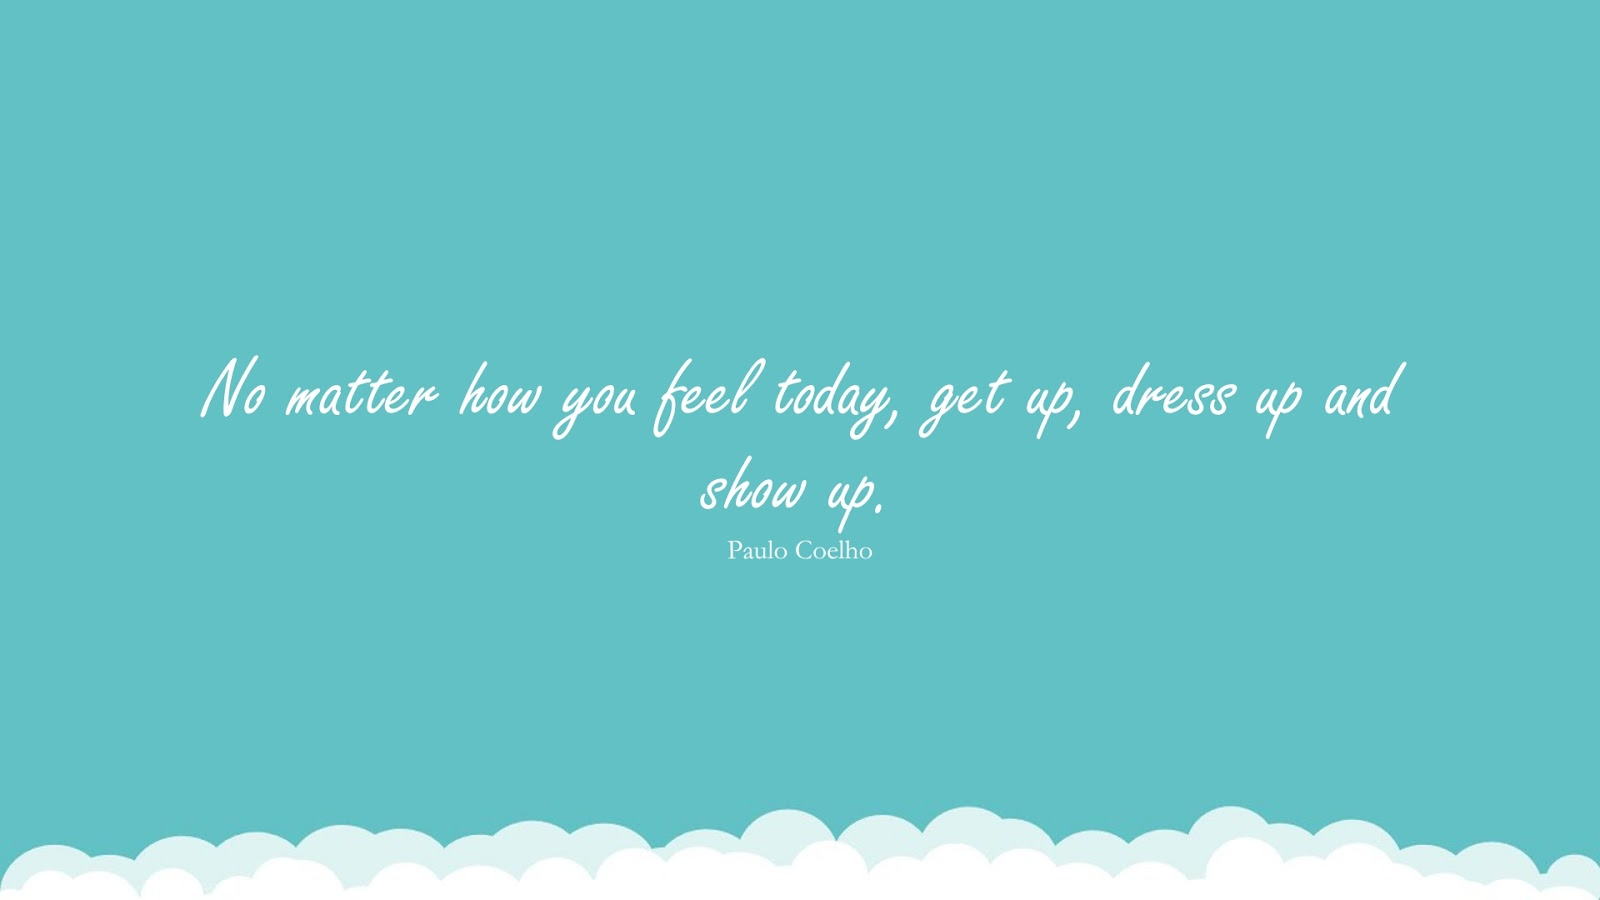 No matter how you feel today, get up, dress up and show up. (Paulo Coelho);  #EncouragingQuotes